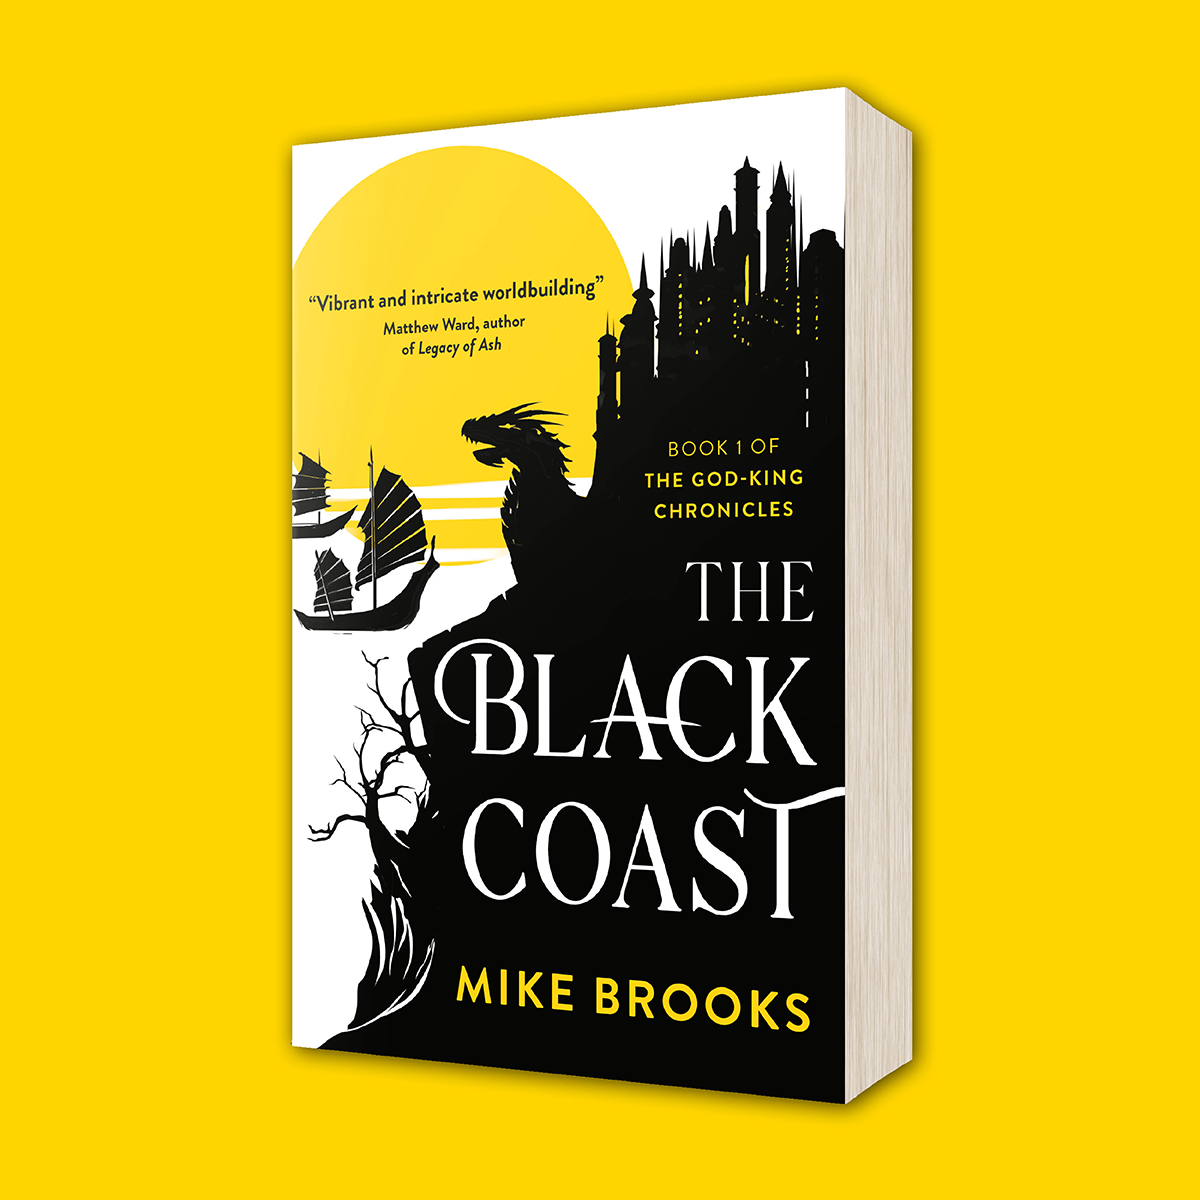 Paperback copy of The Black Coast by Mike Brooks